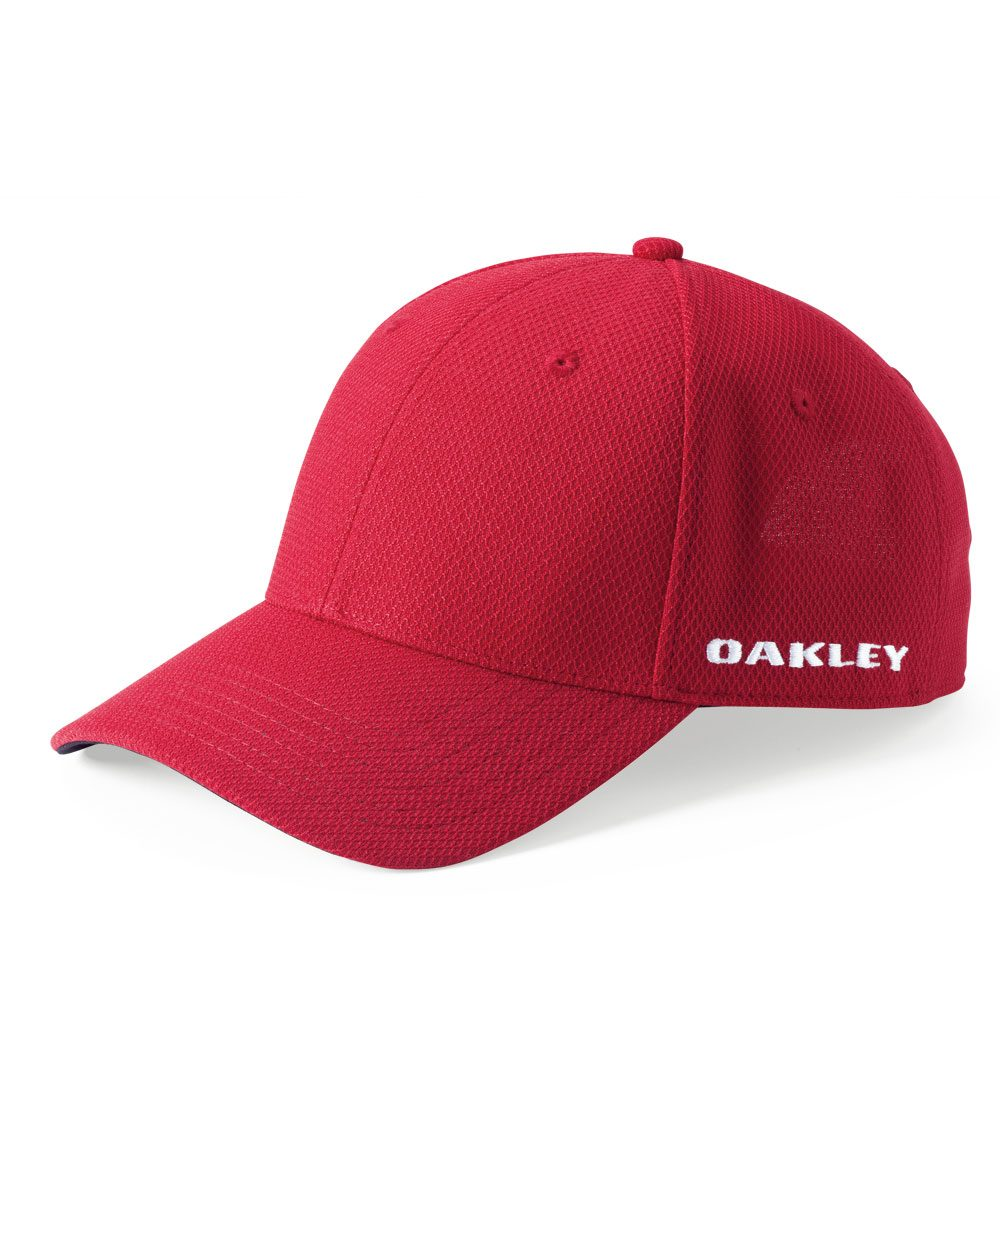 Oakley 91938 - Golf Cresting Ellipse Cap